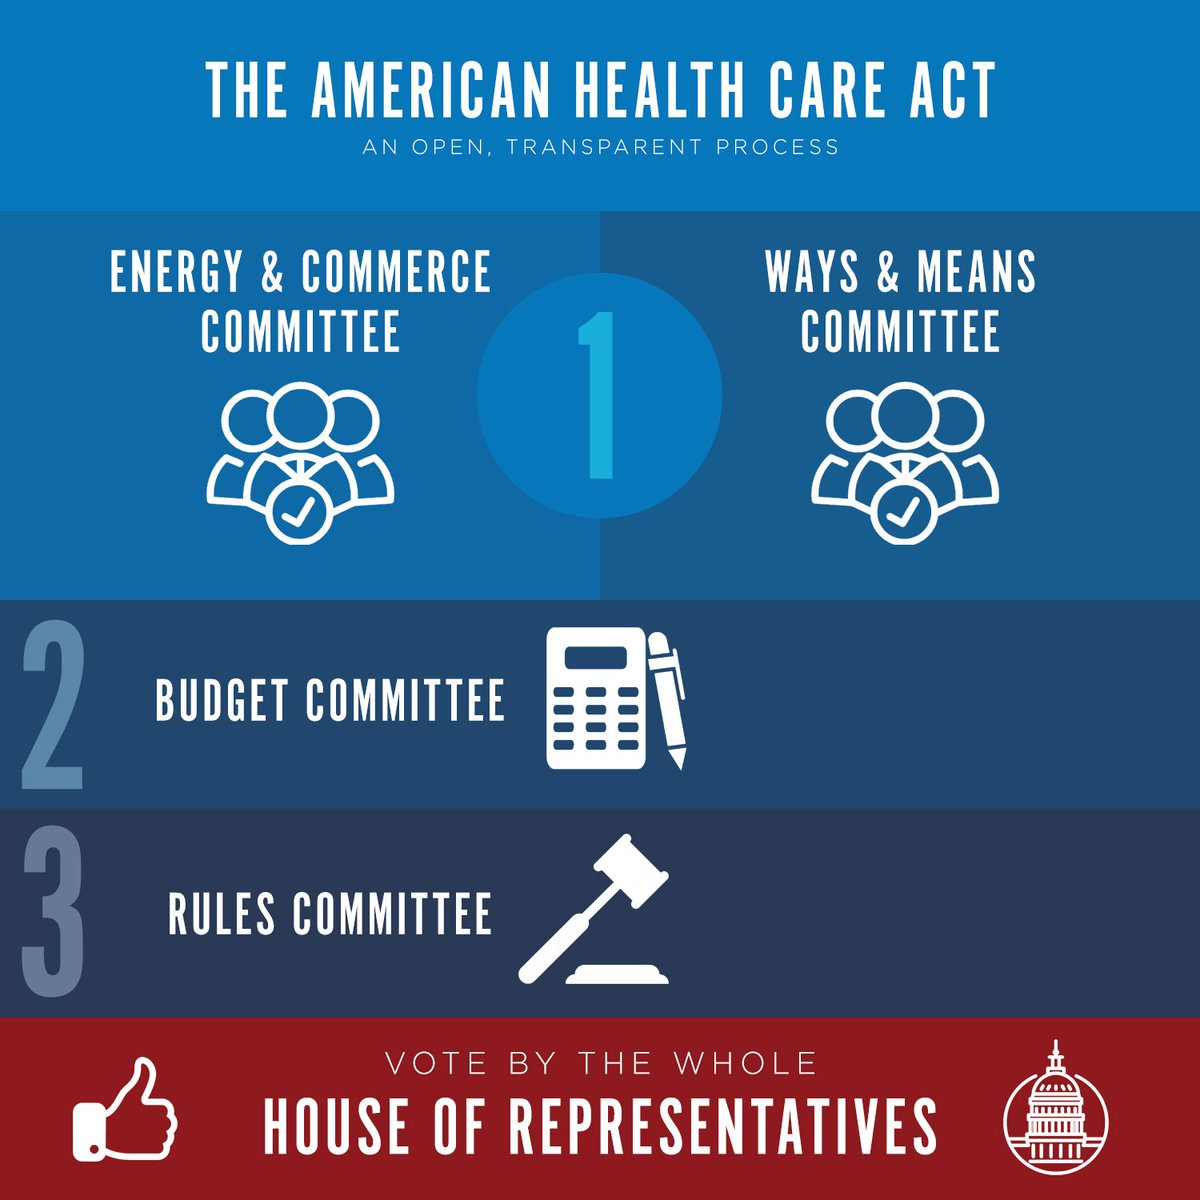 health care laws regulations and standards The design of health care facilities is governed by many regulations and technical requirements  and other standards covering all aspects of health care.